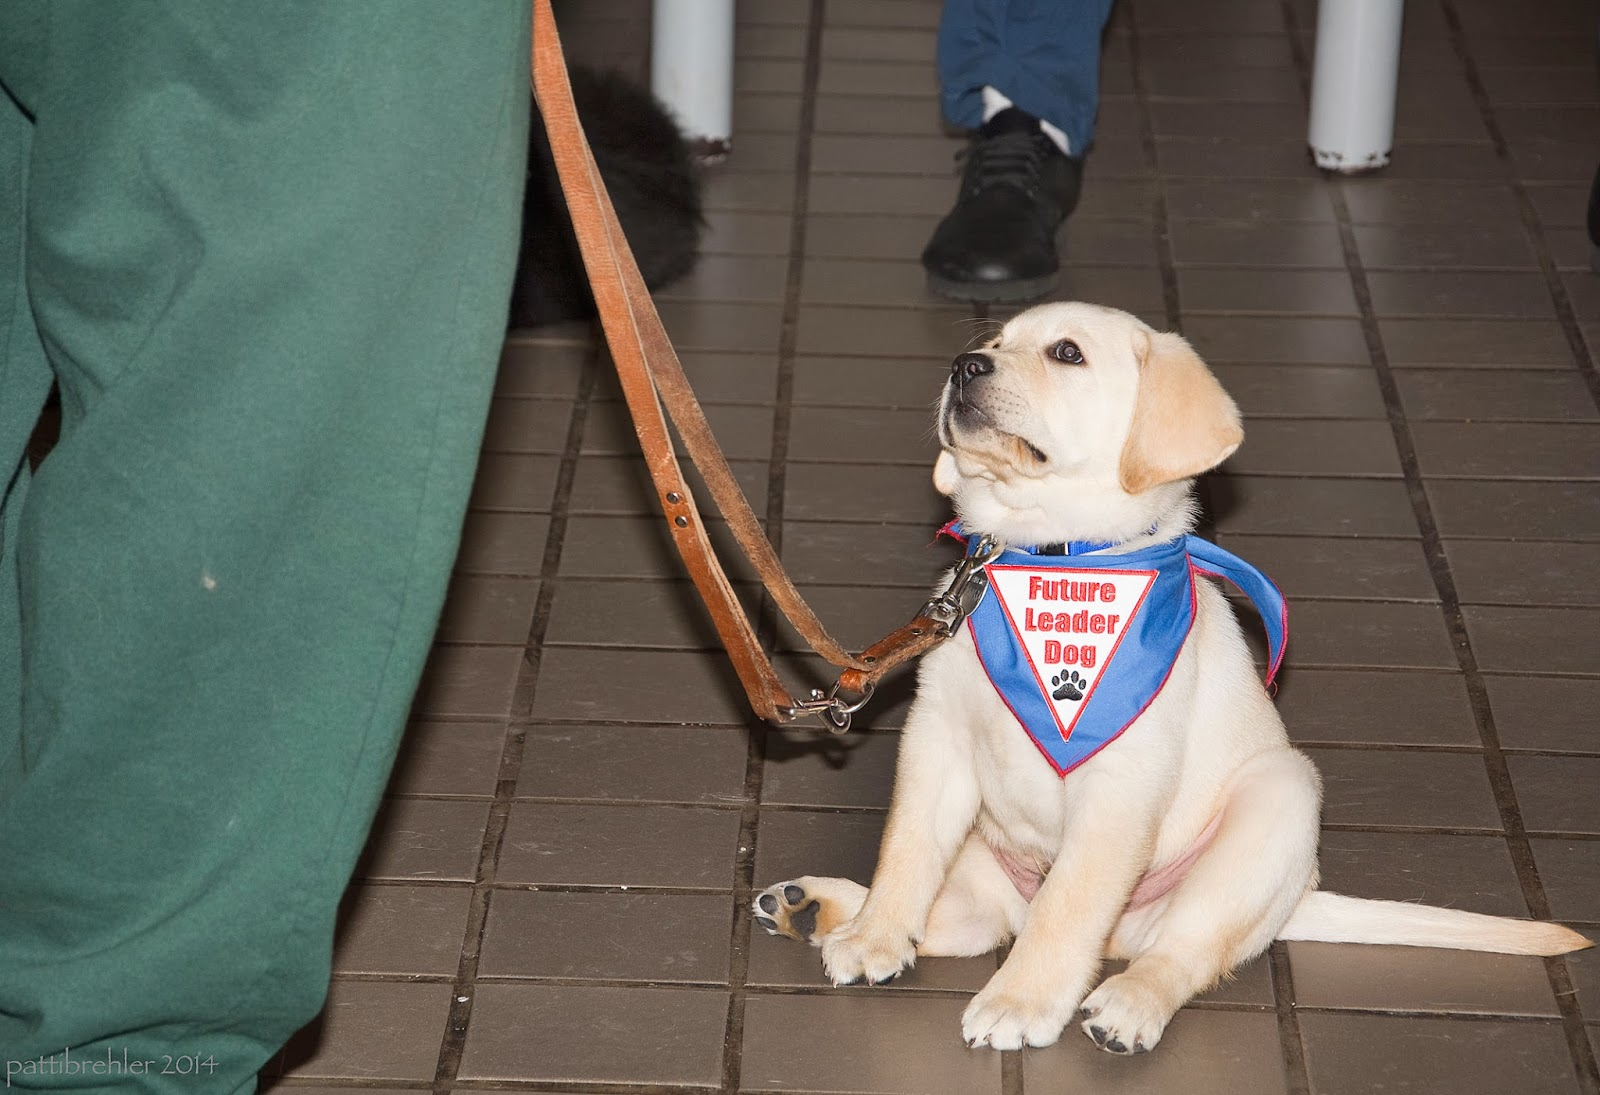 A small yellow Lab puppy is sitting with his rear legs askew on a light brown tile floor. He is wearing a blue bandana with a white triangle patch with the words Future Leader Dog in red and a black paw print. He is looking up to the left at an inmate raiser who is out of view. The raiser's legs in green pants are the only thing visible, and a brown leather leash attached to the puppy.